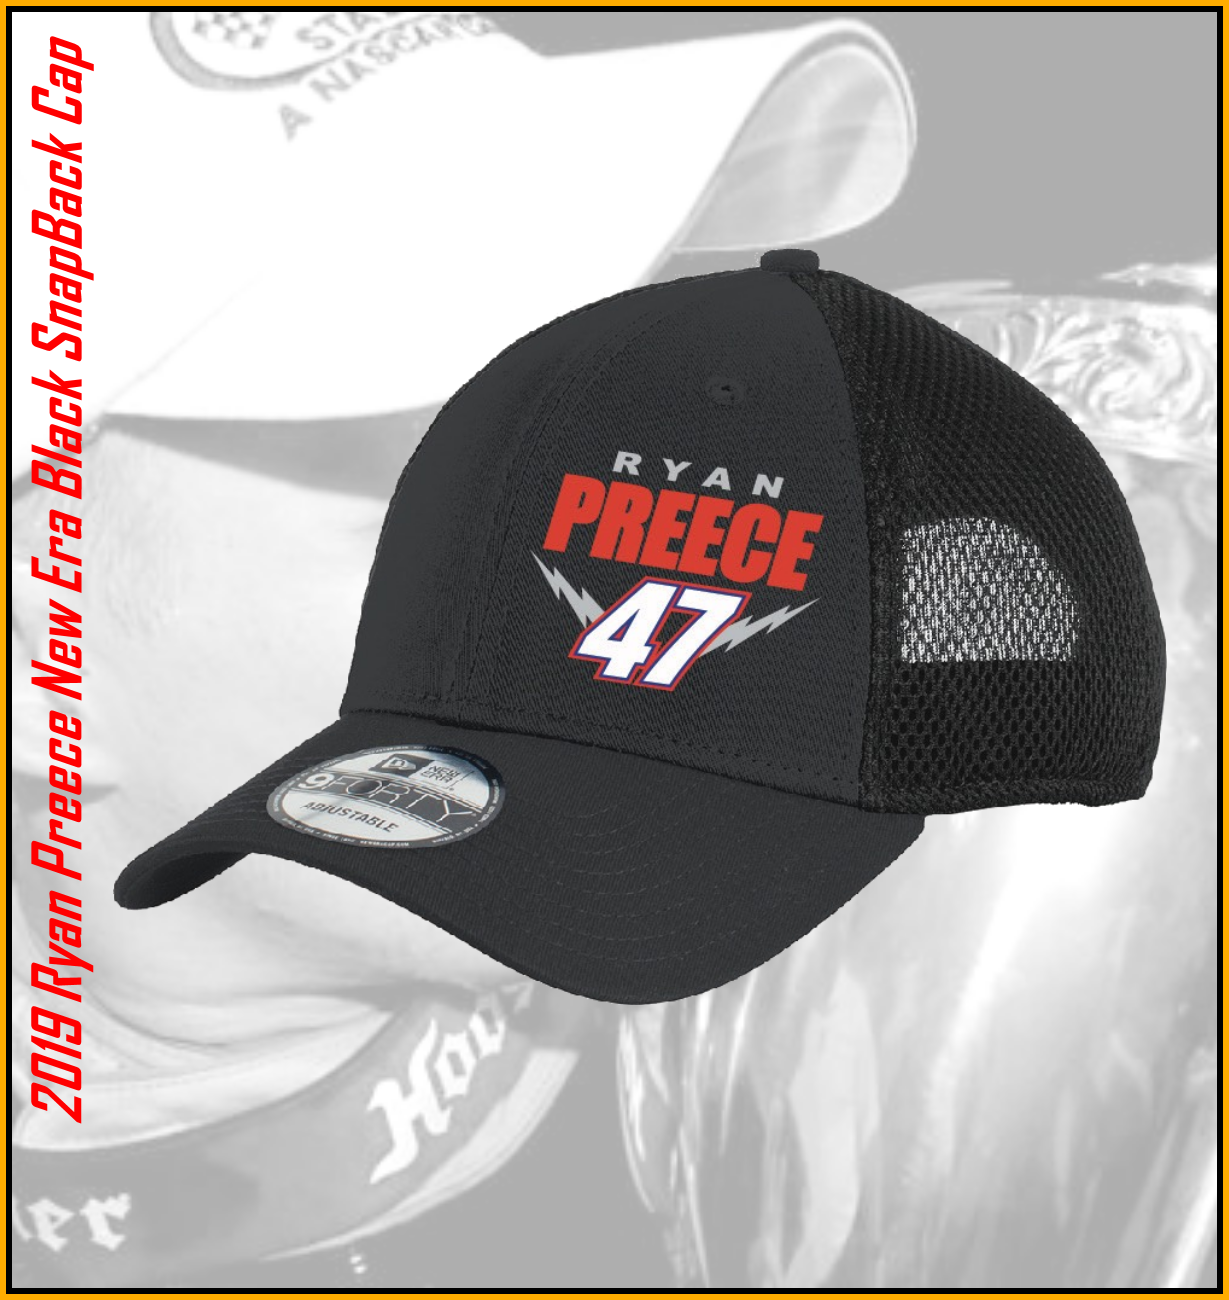 662804edf 2019 Ryan Preece New Era Black SNAPBACK Mesh Hat